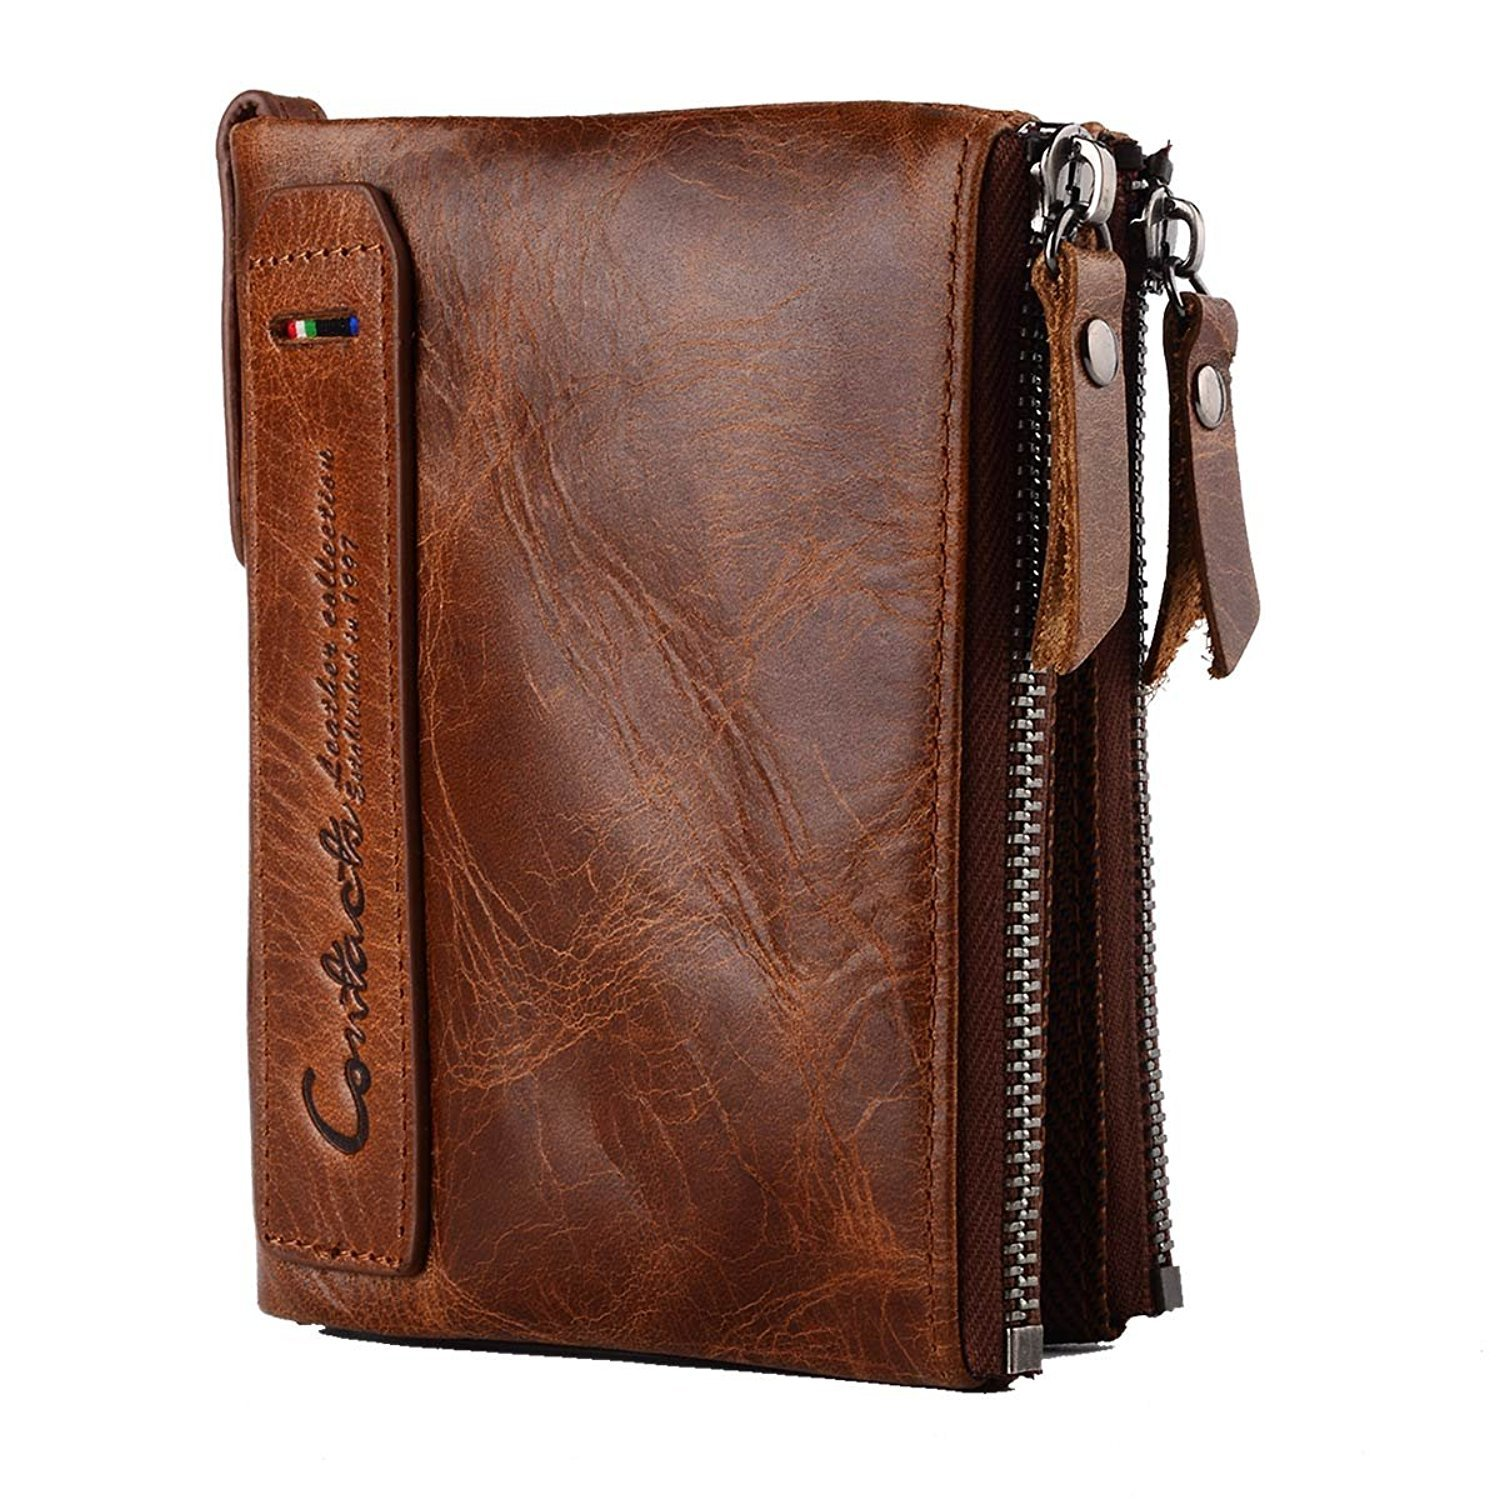 Men's Wallet, Minimalist Vintage Cowhide Leather Wallet With zipper pocket for men Bthdhk 10438924